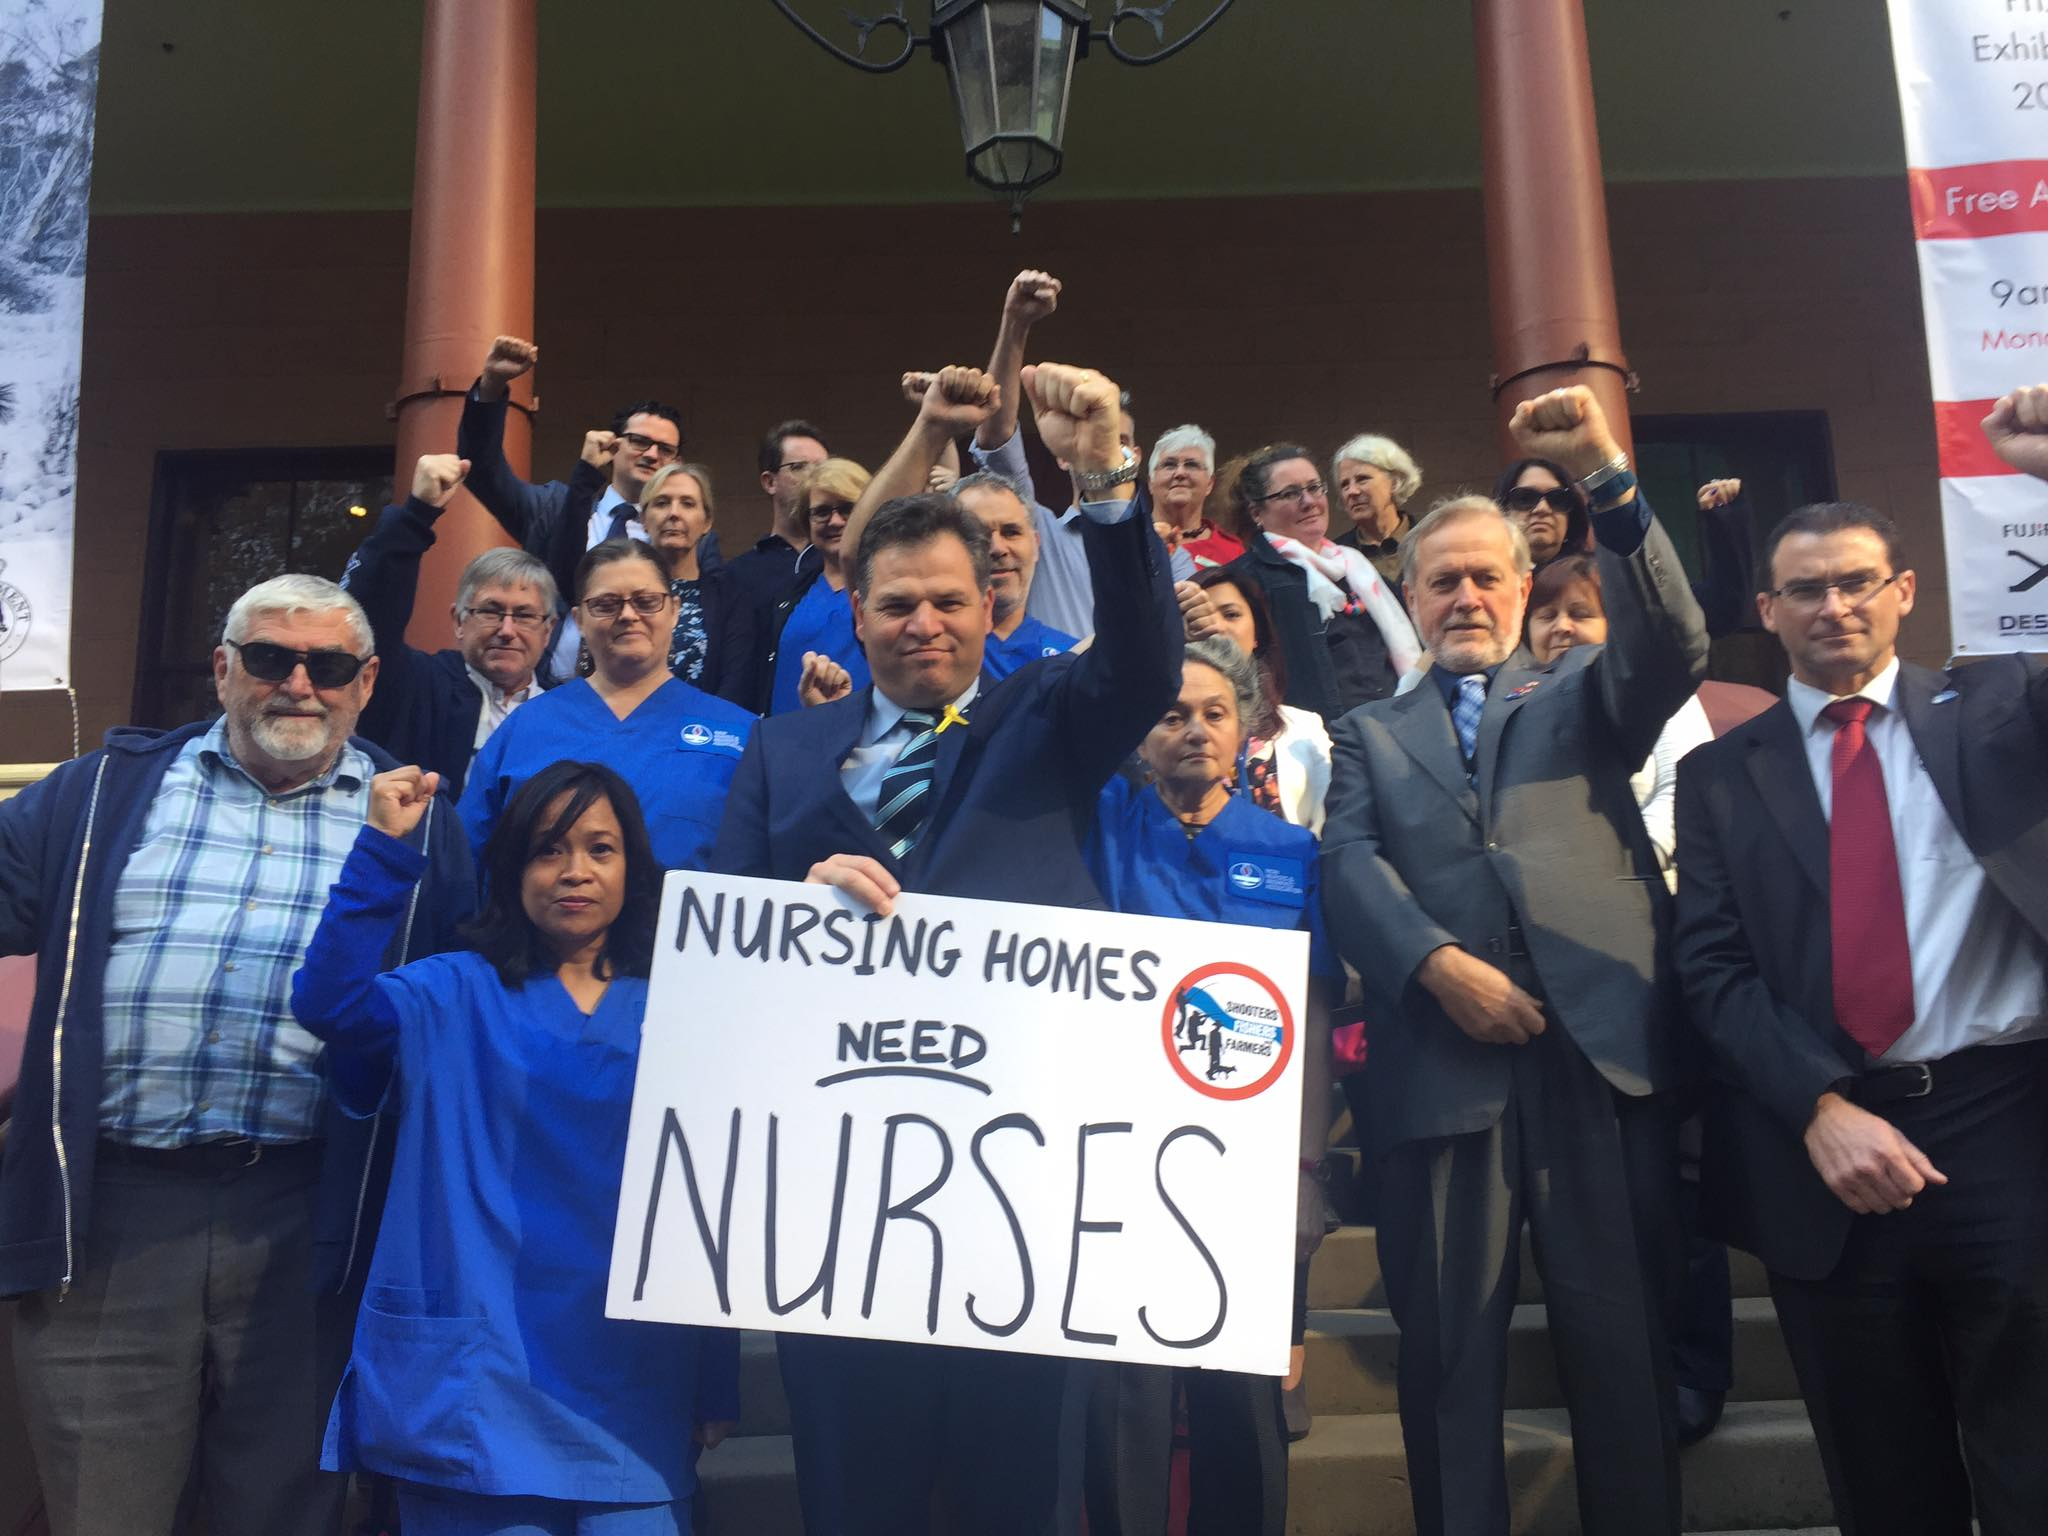 Nursing Homes Need Nurses